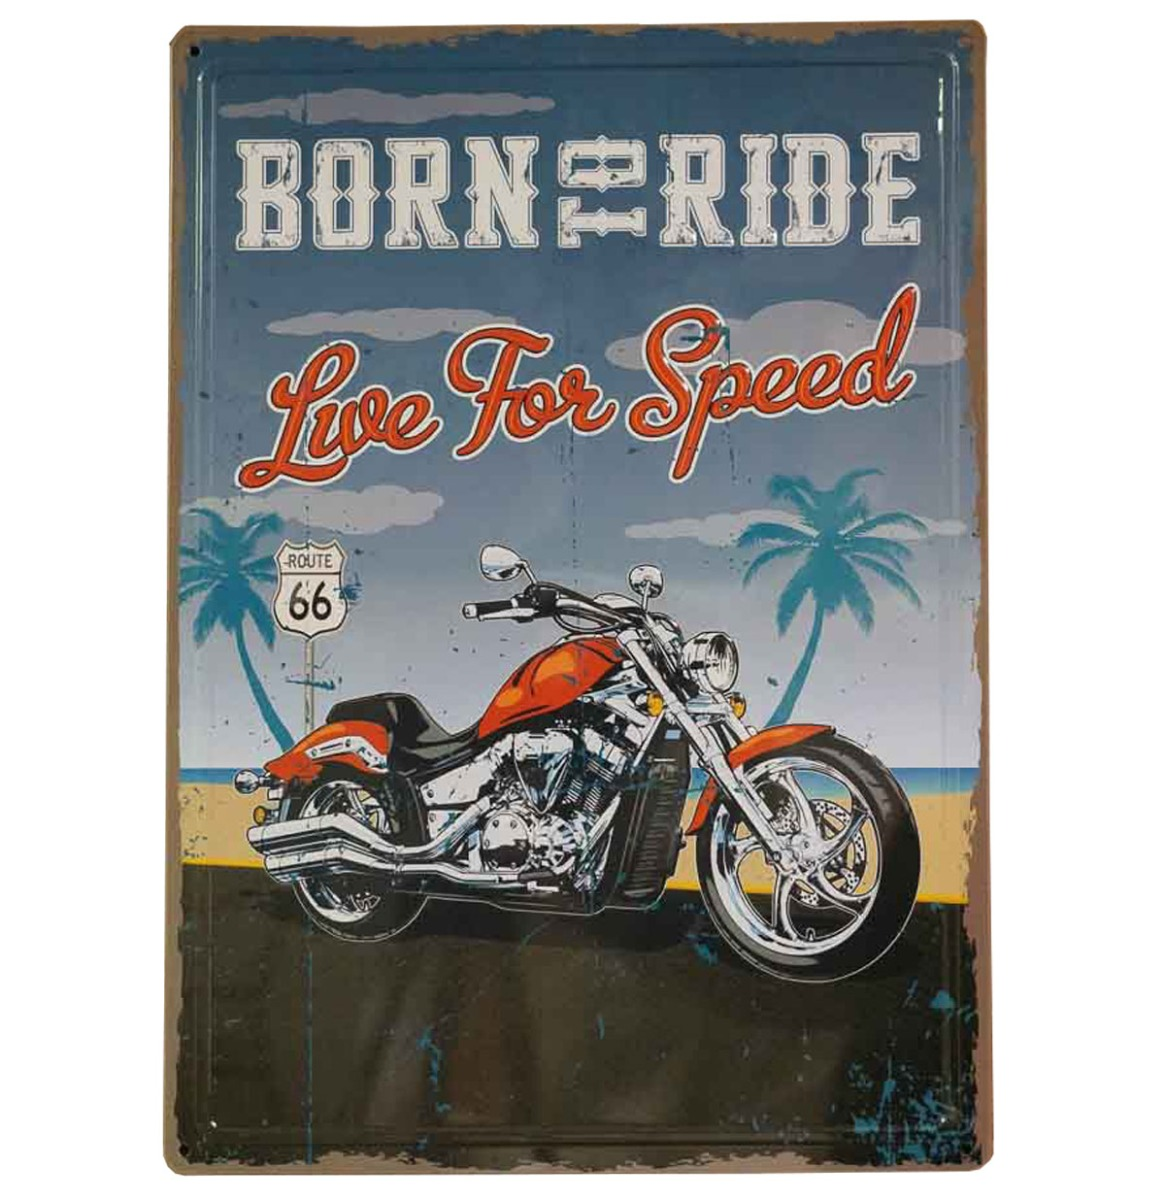 Born To Ride Live For Speed Route 66 Metalen Bord Met Reliëf 43 x 31 cm